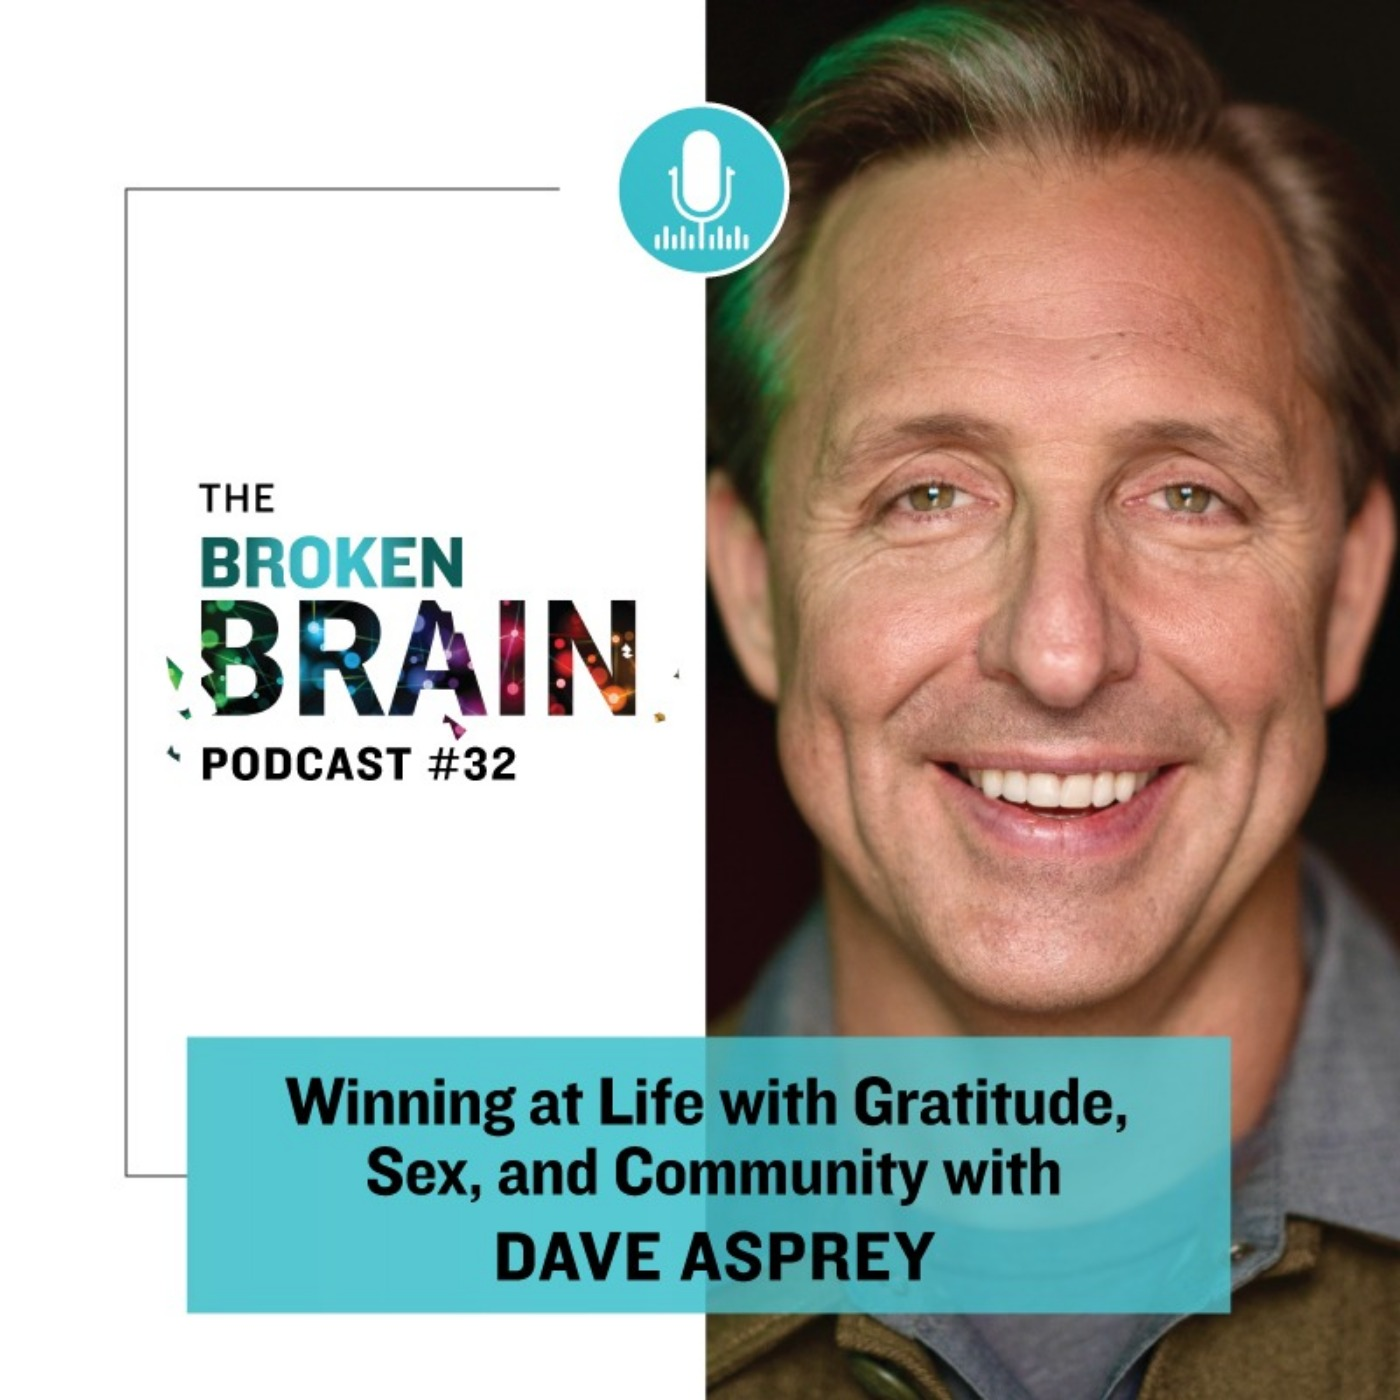 #32: Winning at Life through Gratitude, Sex, and Community with Dave Asprey